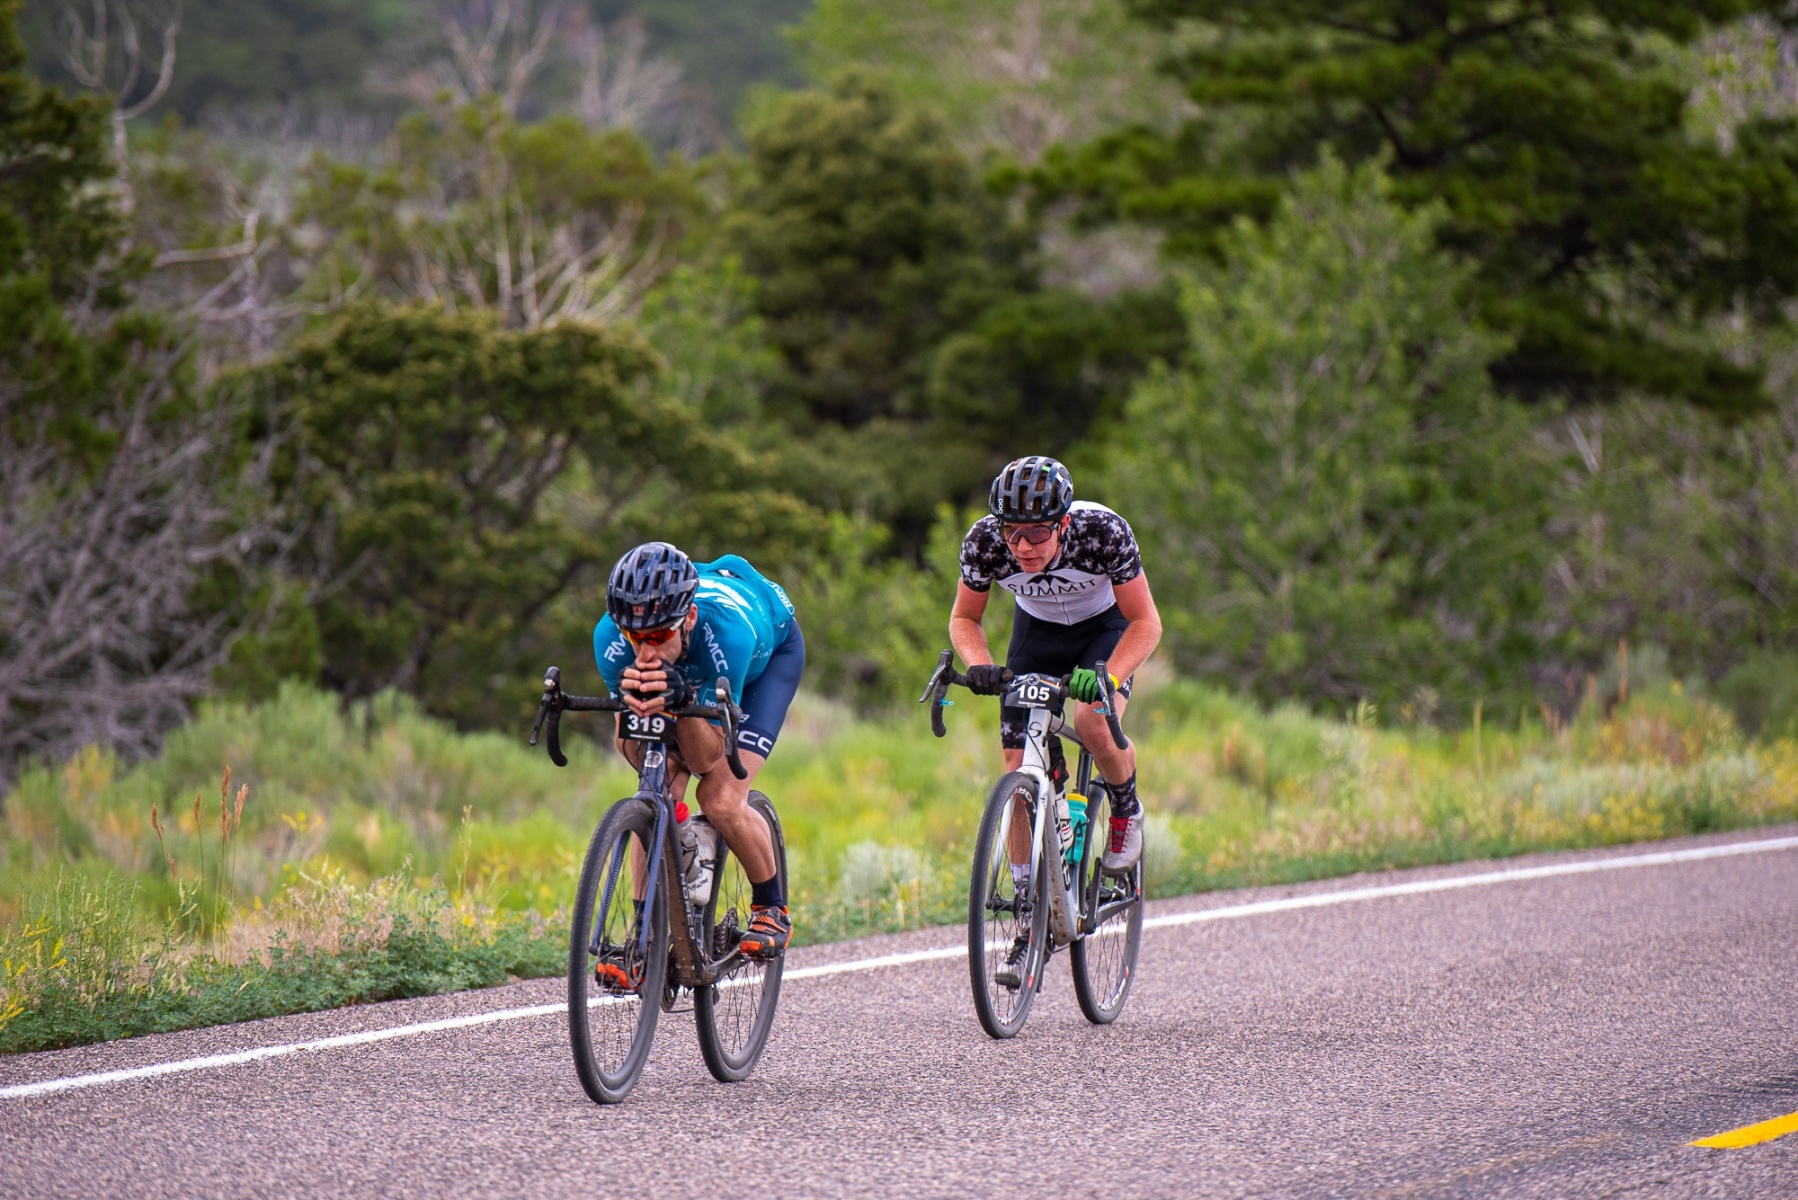 Erik Harrington (#319), leader of the Mens 40-44 group leads Matthew Turner, racing in the Pro/Open field, down the Highway 153 descent. Photo: Steven L. Sheffield.